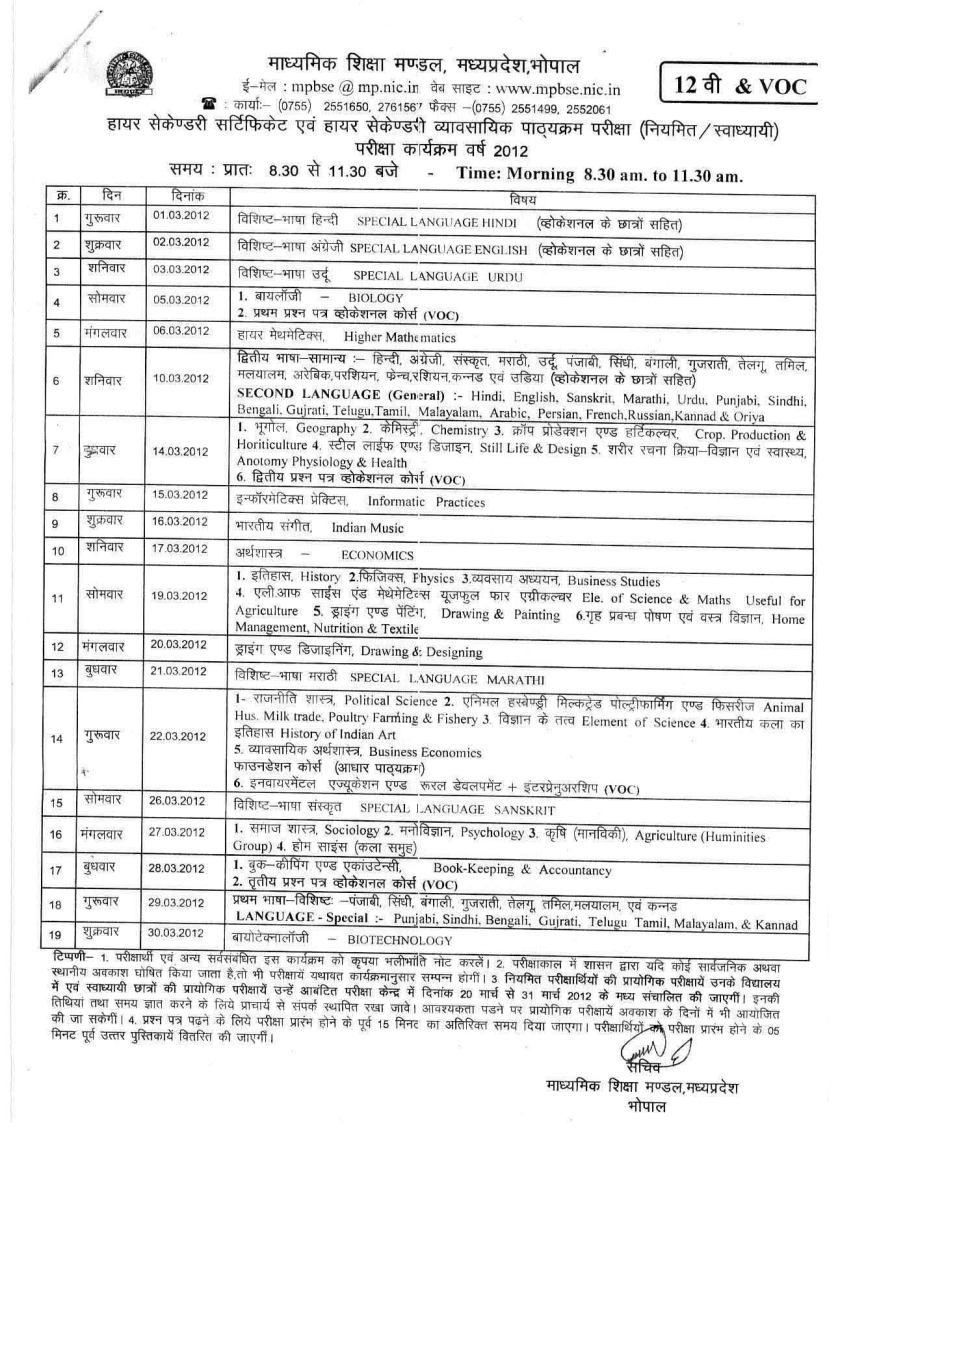 mp board exam time table of th studychacha you are asking mp board class 12th exam time table here i am uploading a file that contains the mp board class 12th exam 2012 time table